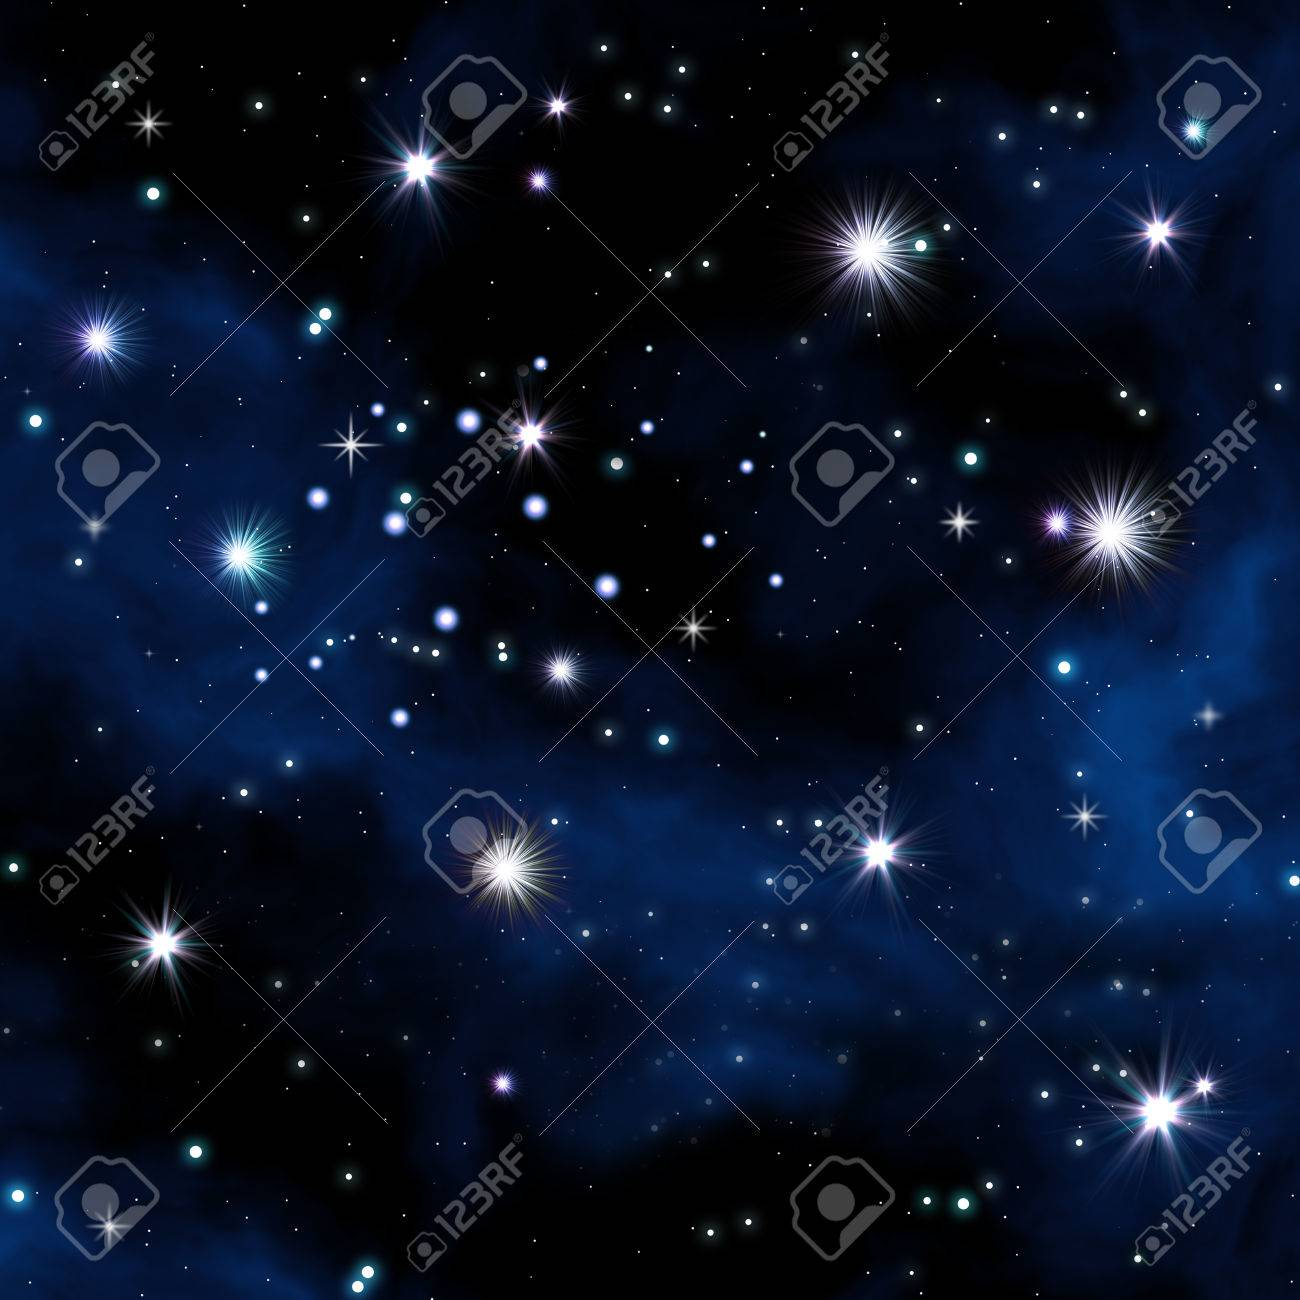 Beautiful starry sky background a high resolution beautiful starry sky background a high resolution 60636807 voltagebd Choice Image